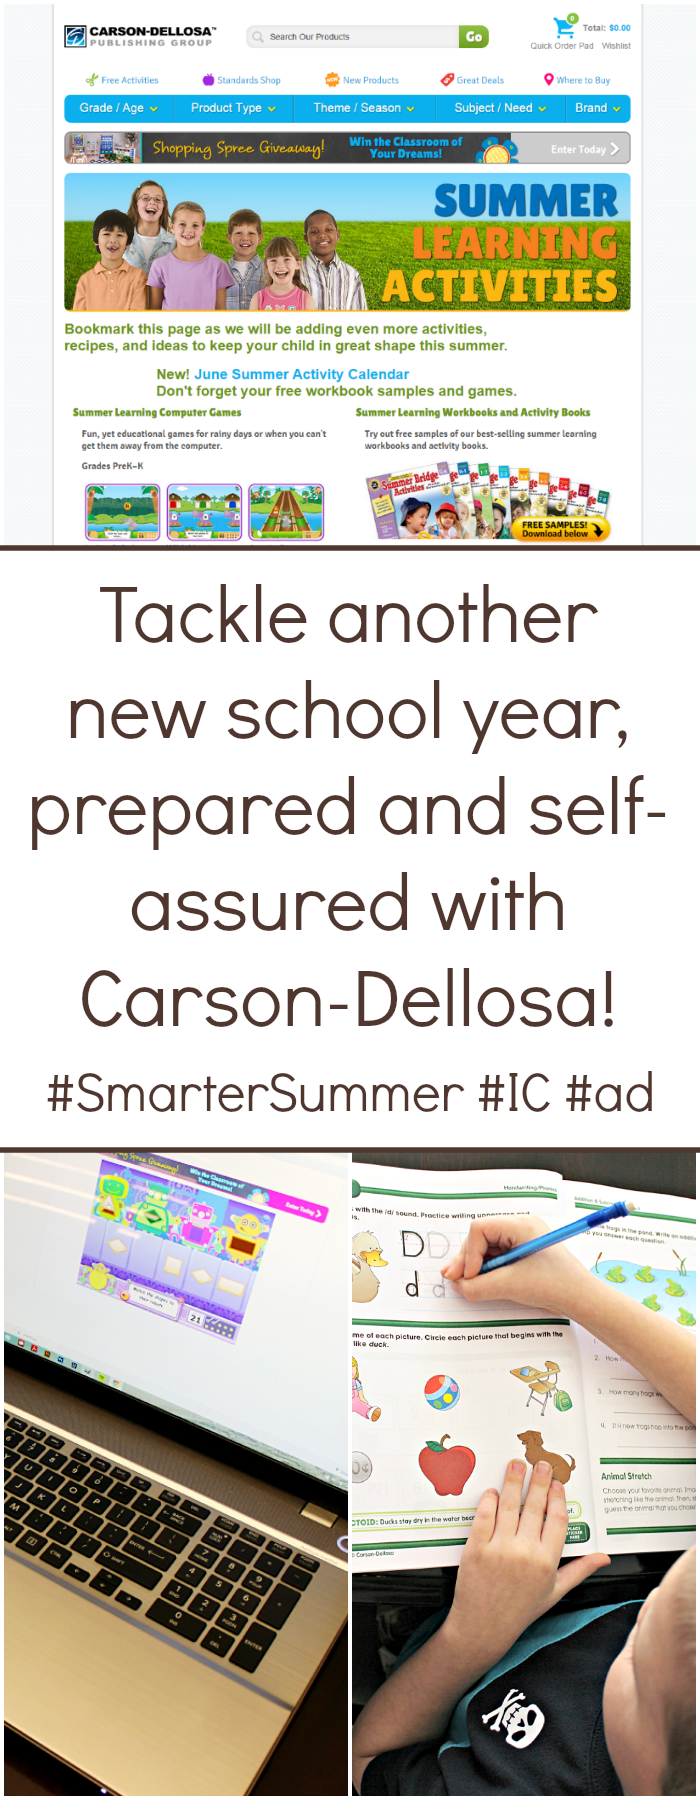 Despite the importance of summer adventure, we don't want everything the kids learned during the school year to fall to the wayside. We want to make sure our children return to tackle another new school year, prepared and self-assured. #SmarterSummer #IC